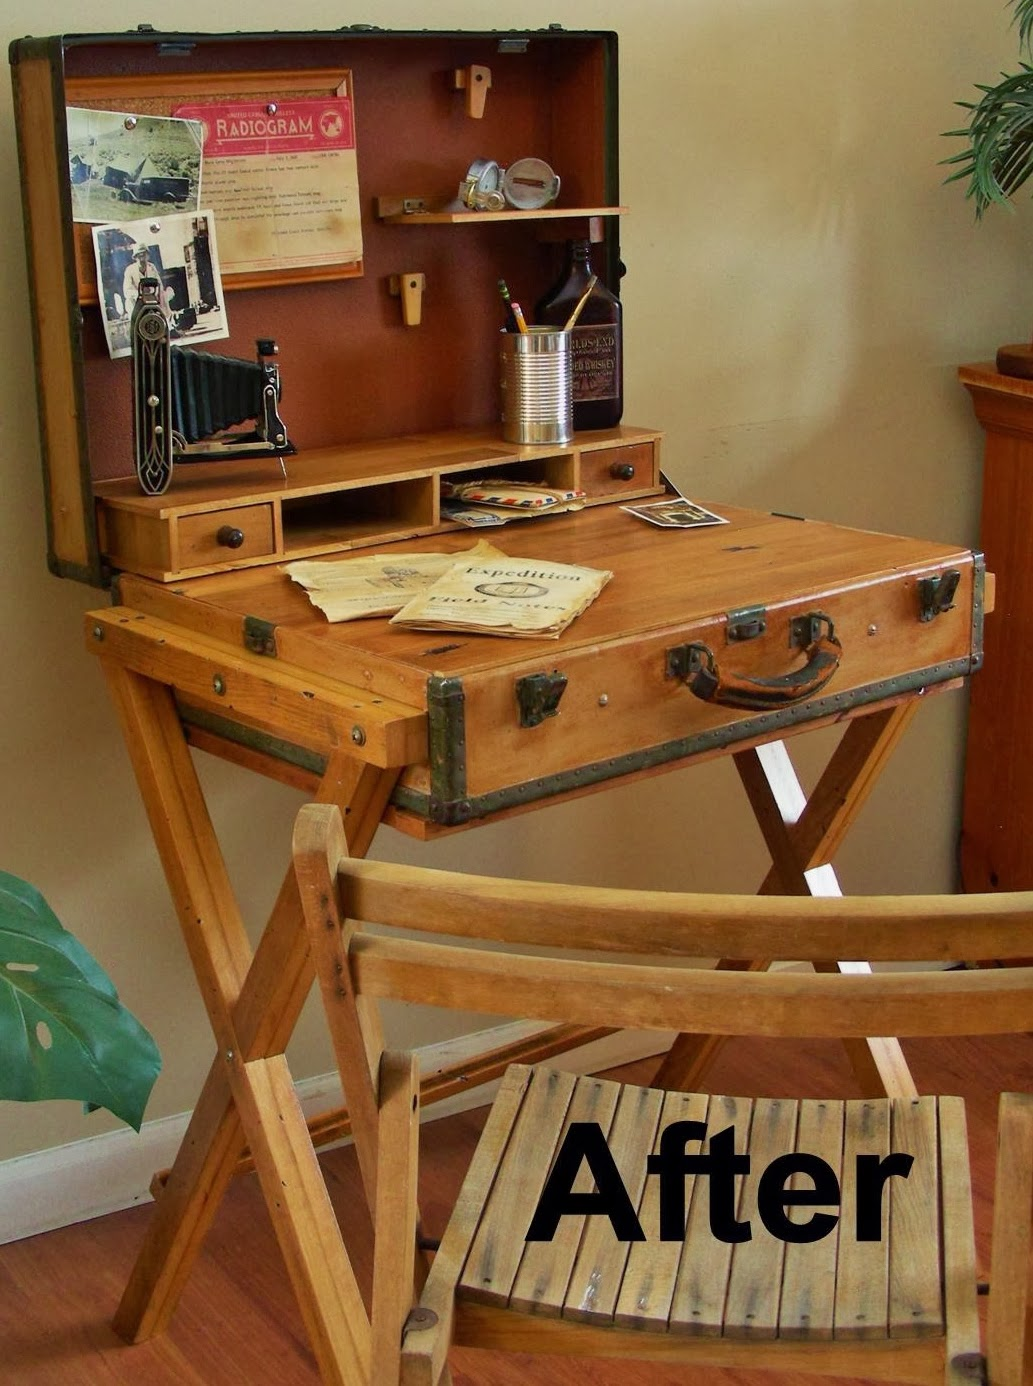 Destinations vintage upcycled repurposed stuff extreme upcycle the suitcase desk - Repurposing old suitcasescreative ideas ...